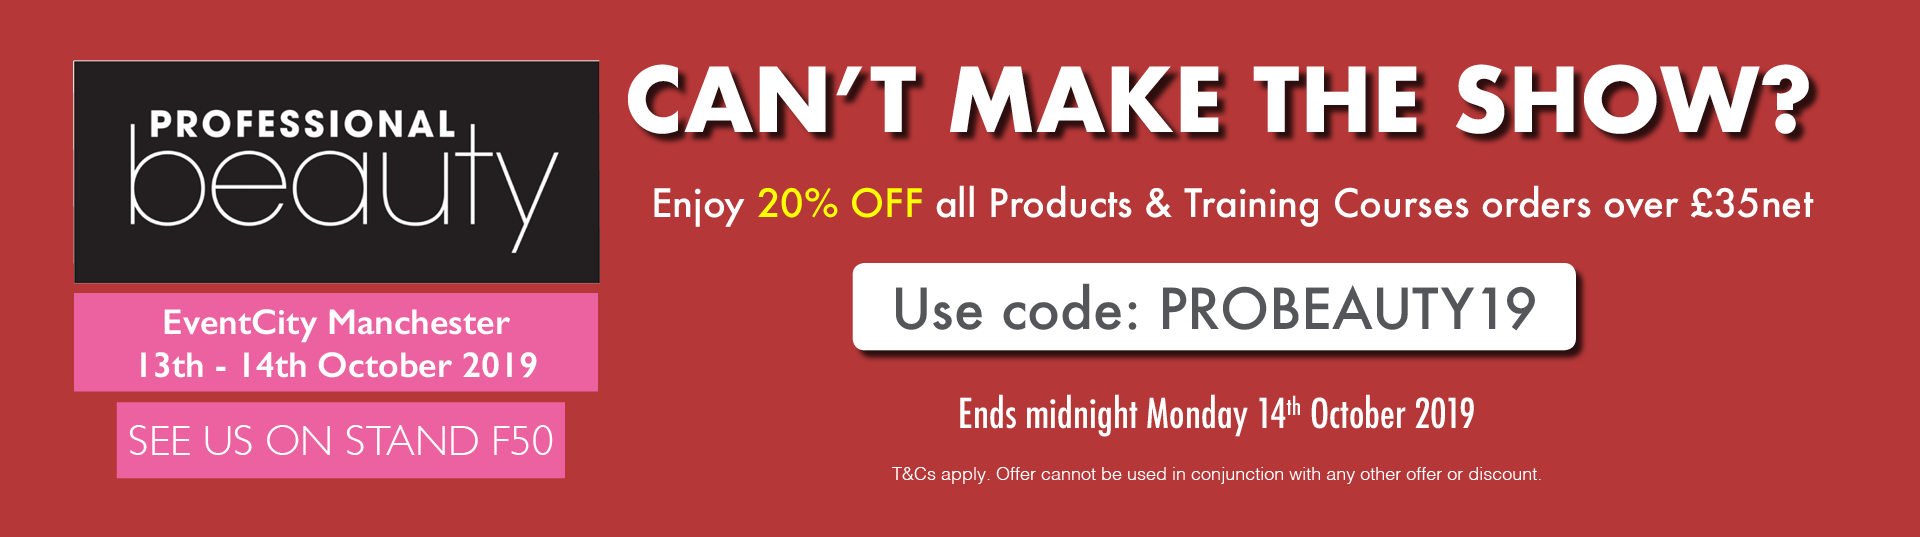 Enjoy 20% off orders over £35net using code PROBEAUTY19 ends midnight Monday 14th Oct!